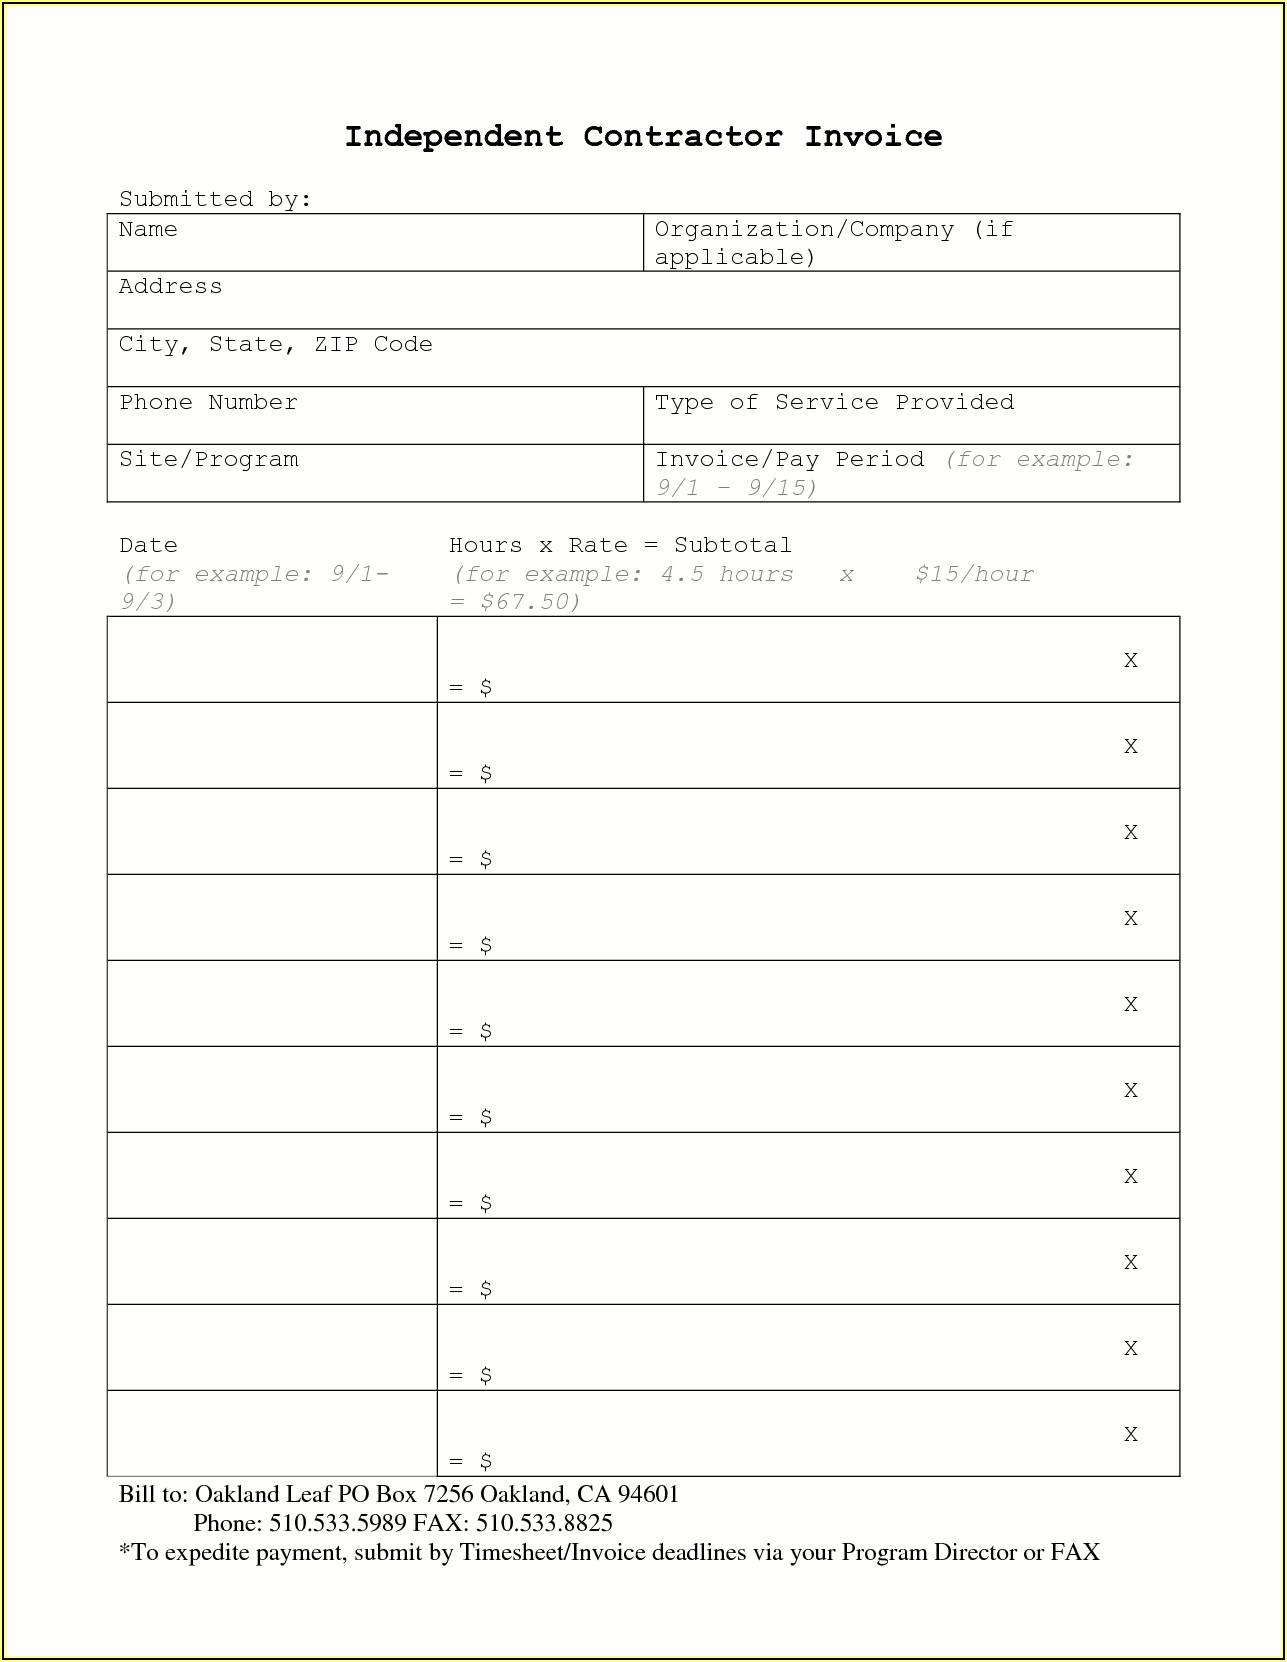 Example Invoice Independent Contractor